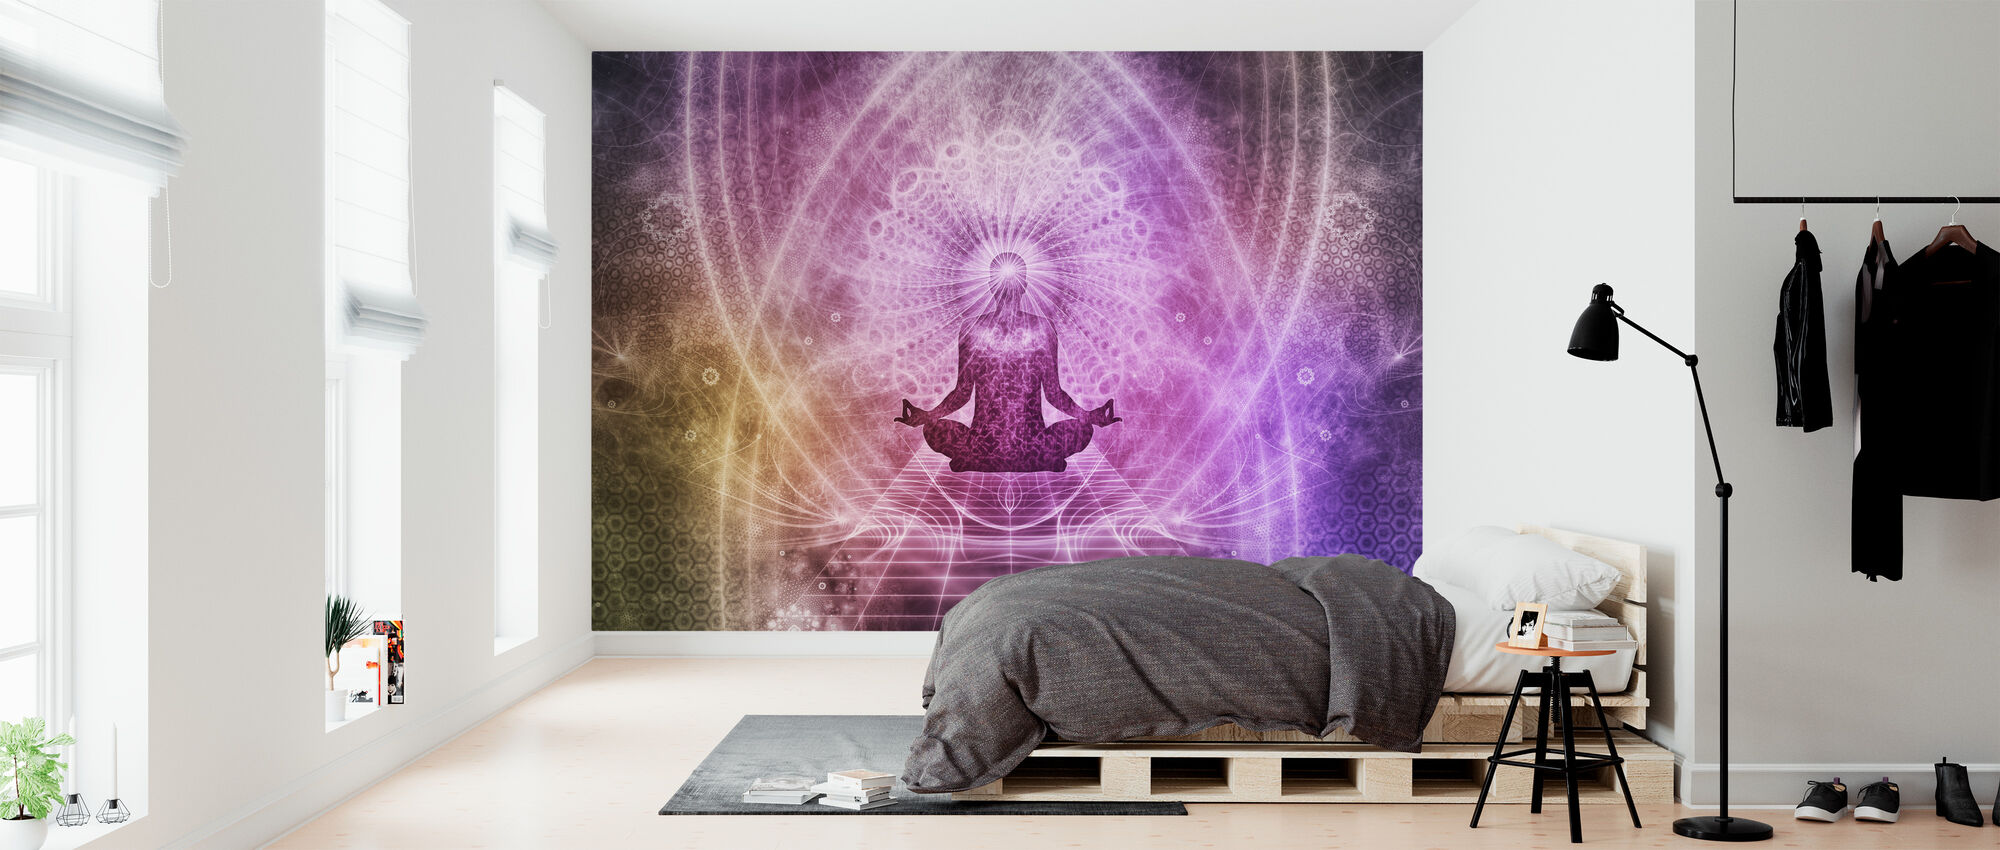 Spiritual Meditation - Wallpaper - Bedroom